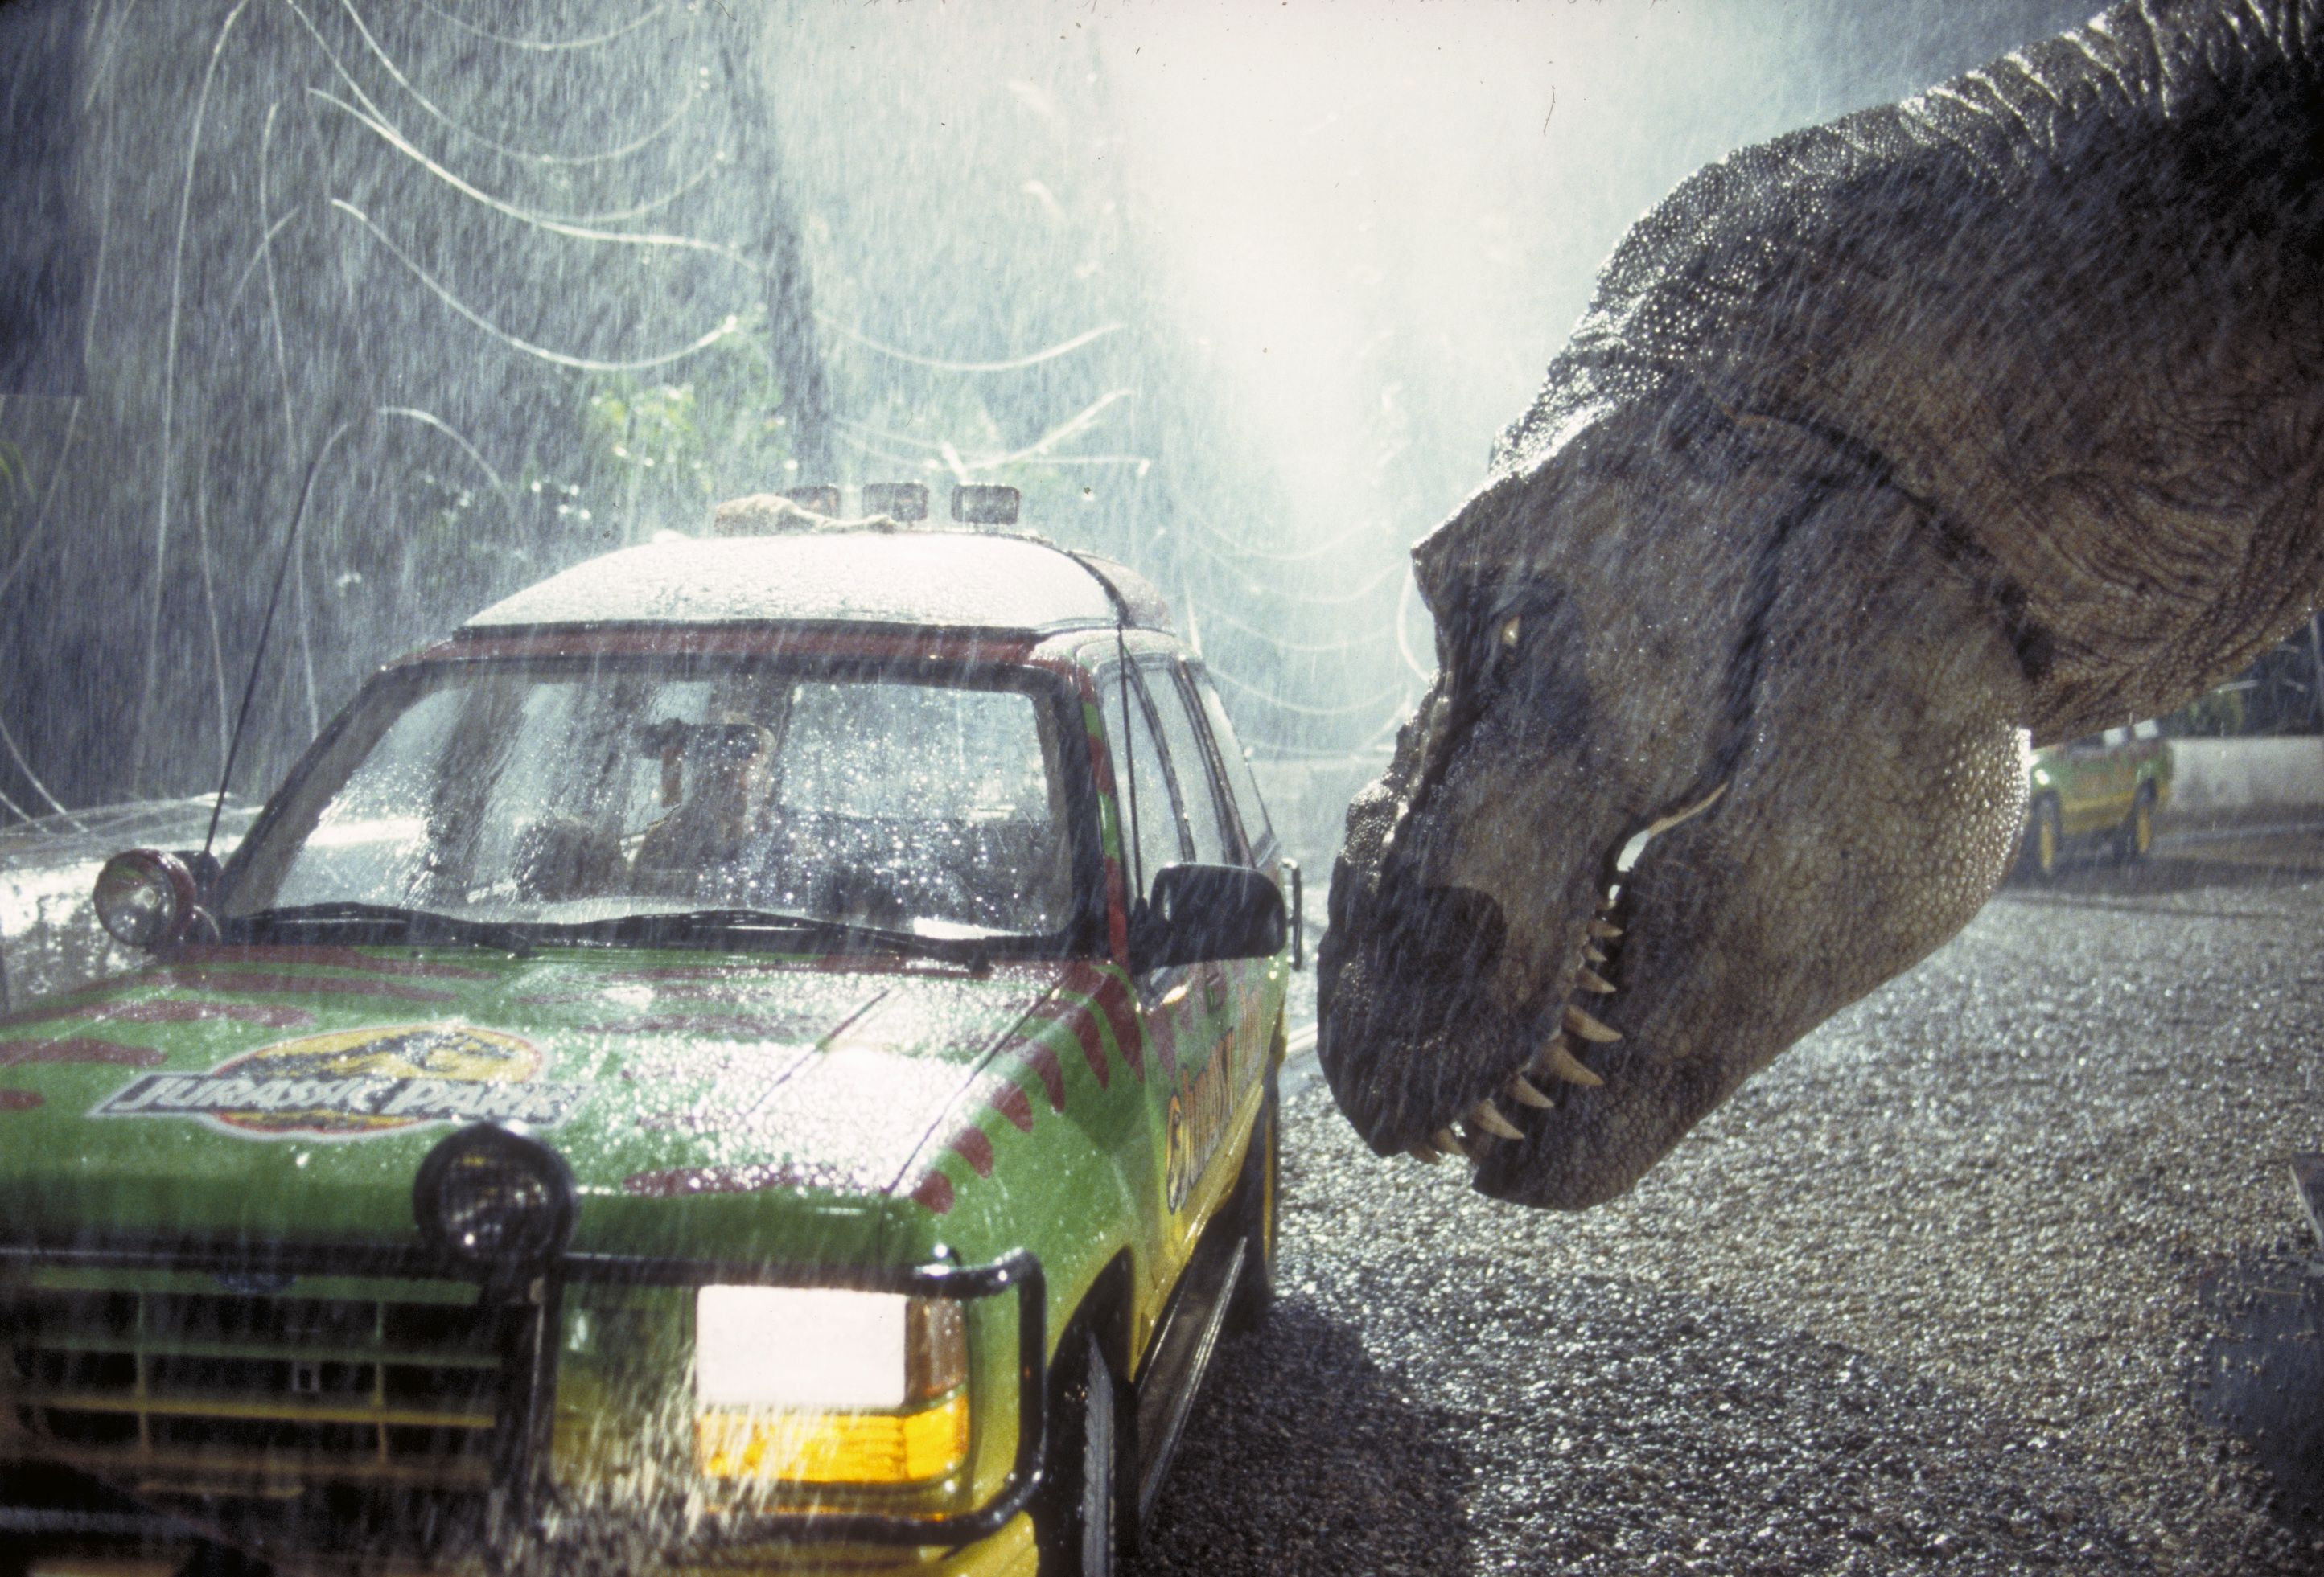 We Can Build a Real Jurassic Park, Says Neuralink Cofounder. Let's Not.